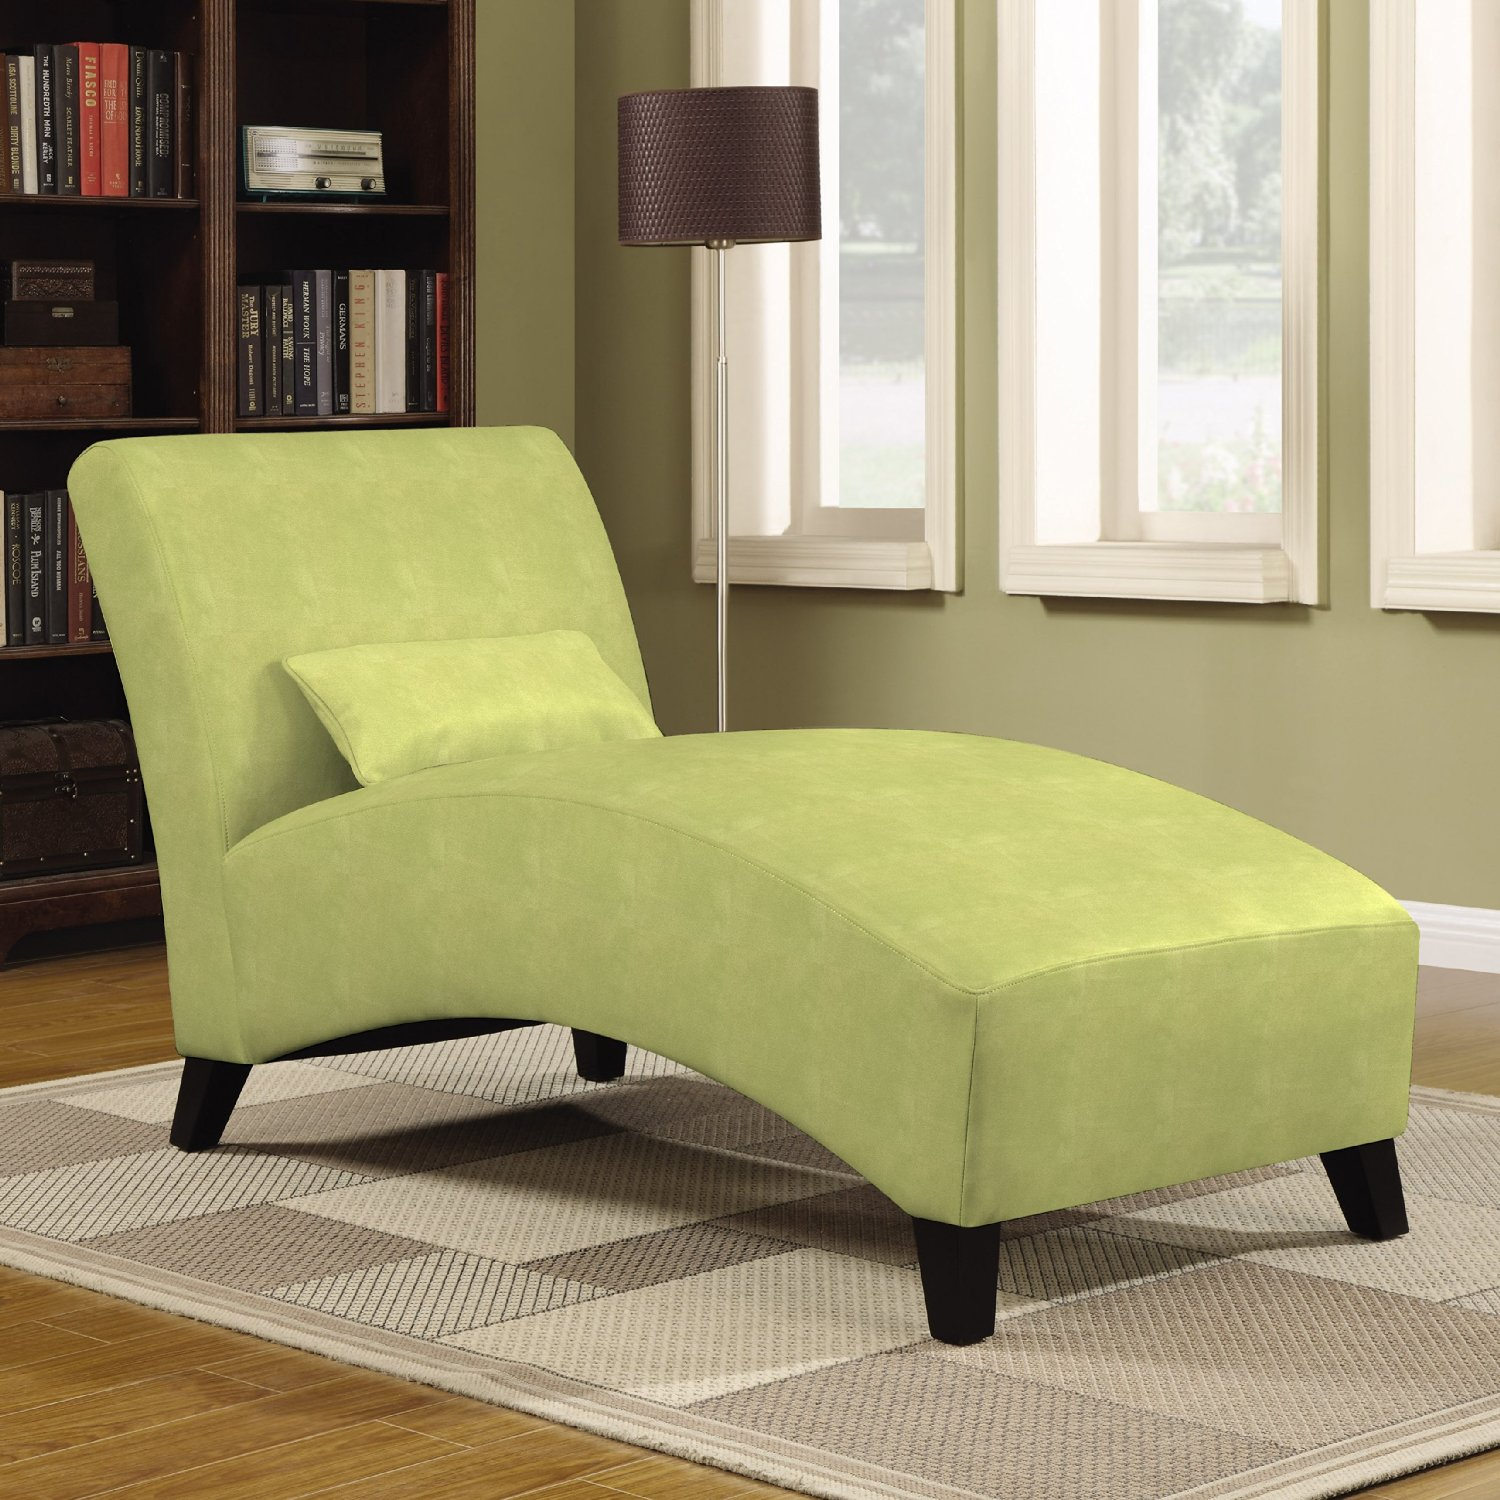 small chaise longue for bedroom upholstered chaise lounges for bedrooms 19819